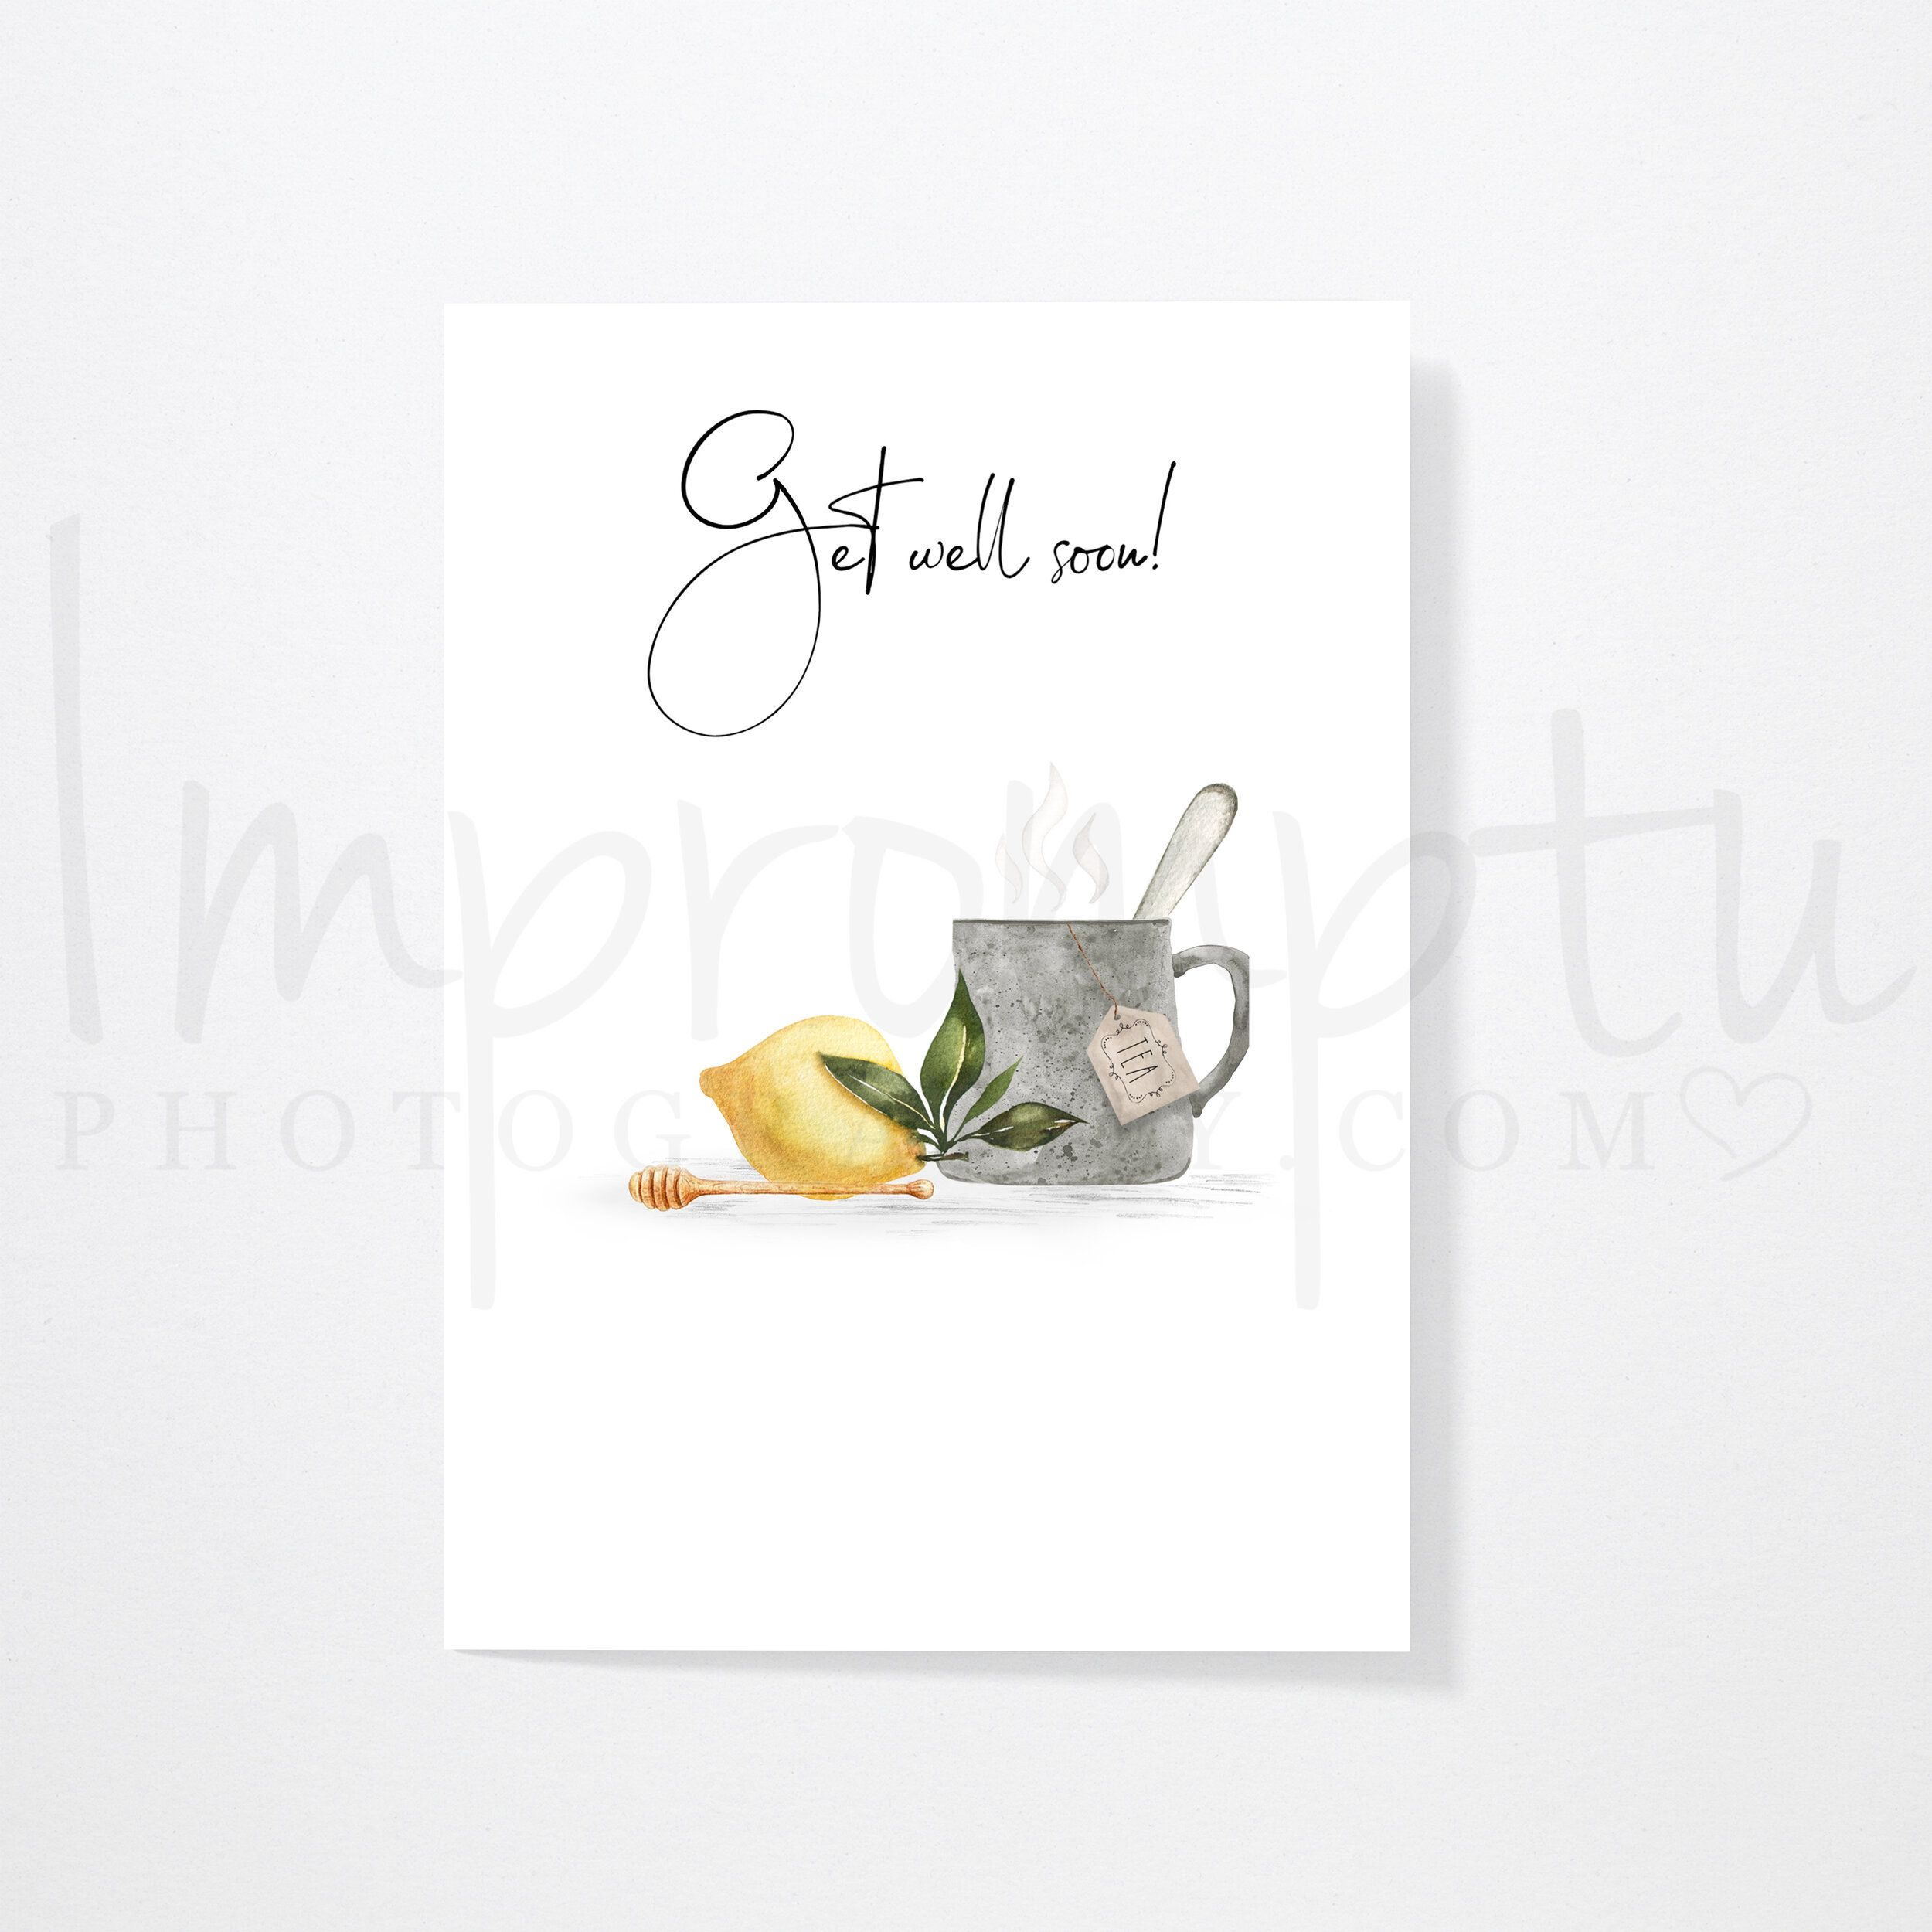 Printable 5x7 Calligraphy Get Well Soon Tea Card Impromptu Photography Get Well Cards Cards Encouragement Cards